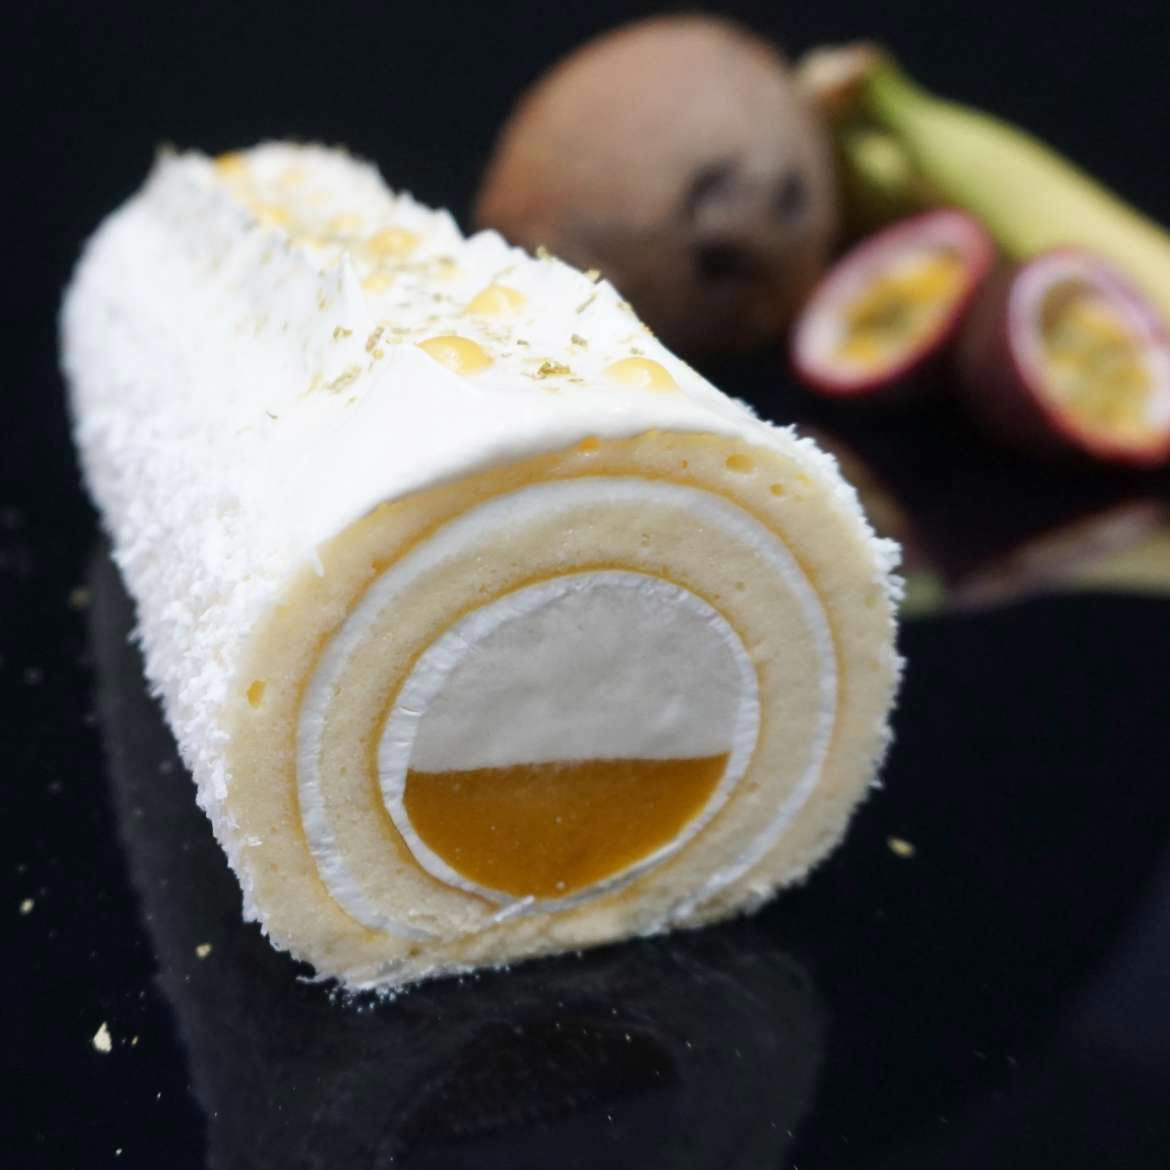 sicoly fiche recette Roll Cake exotique